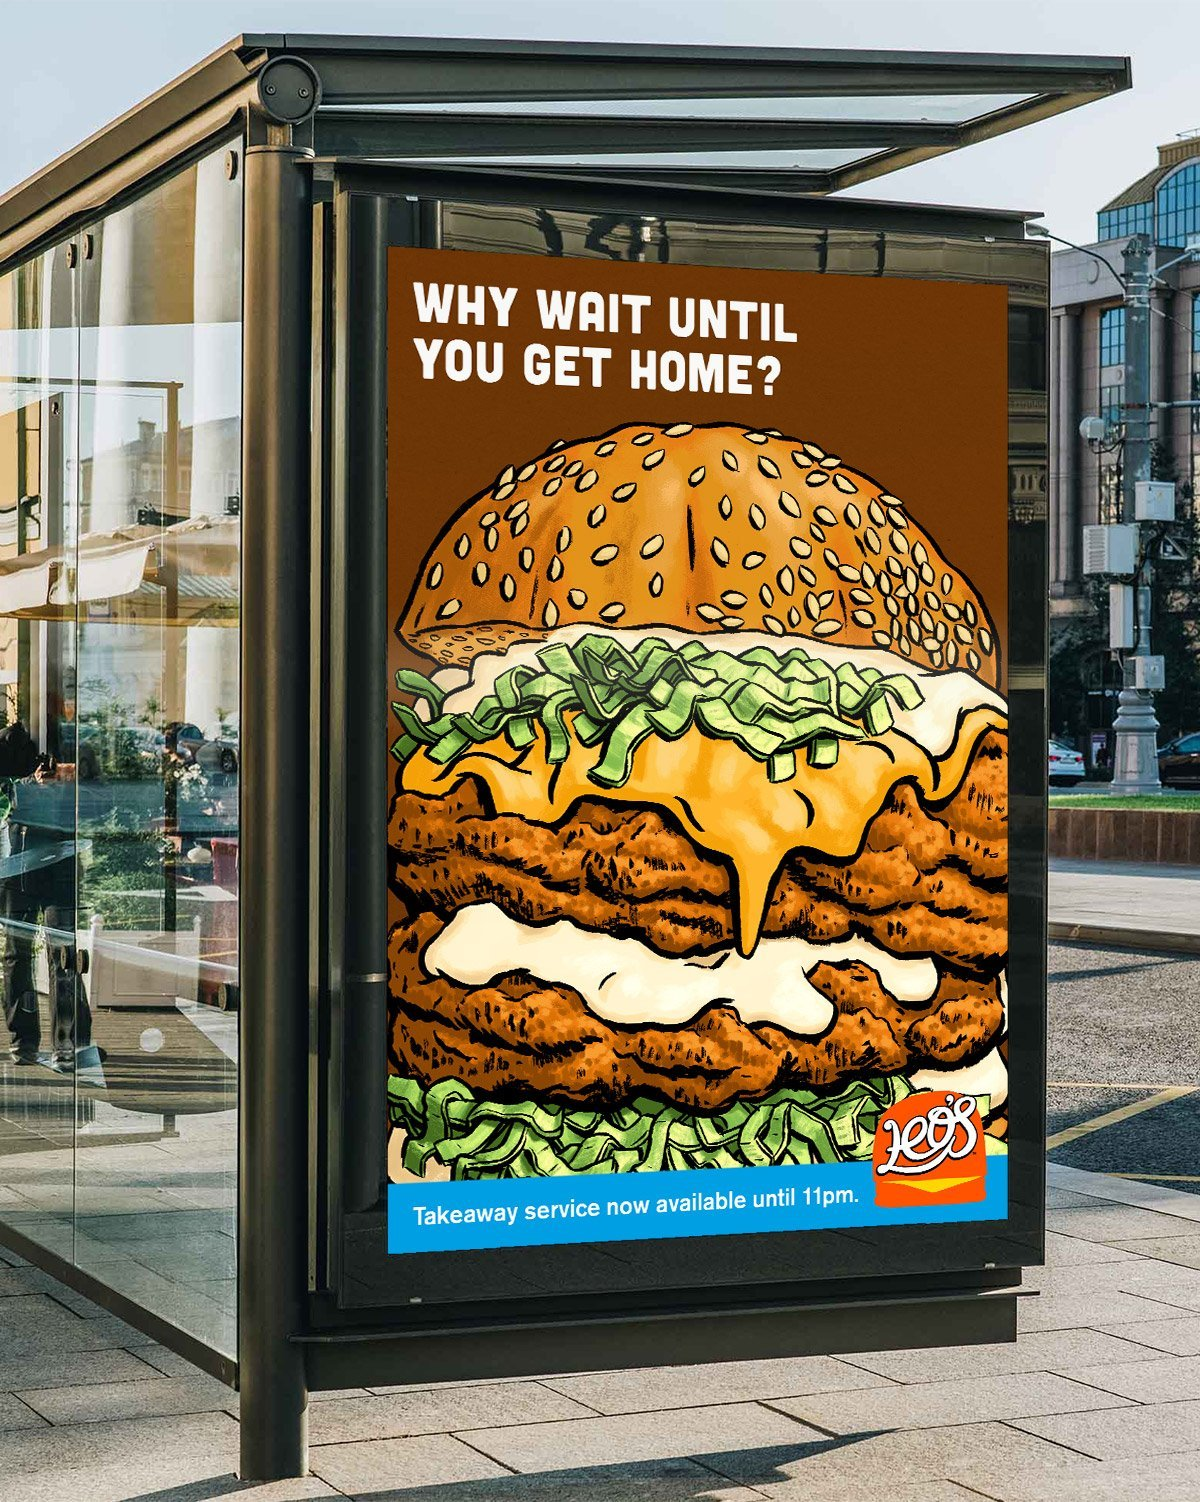 Chick_burger_busstop_1200